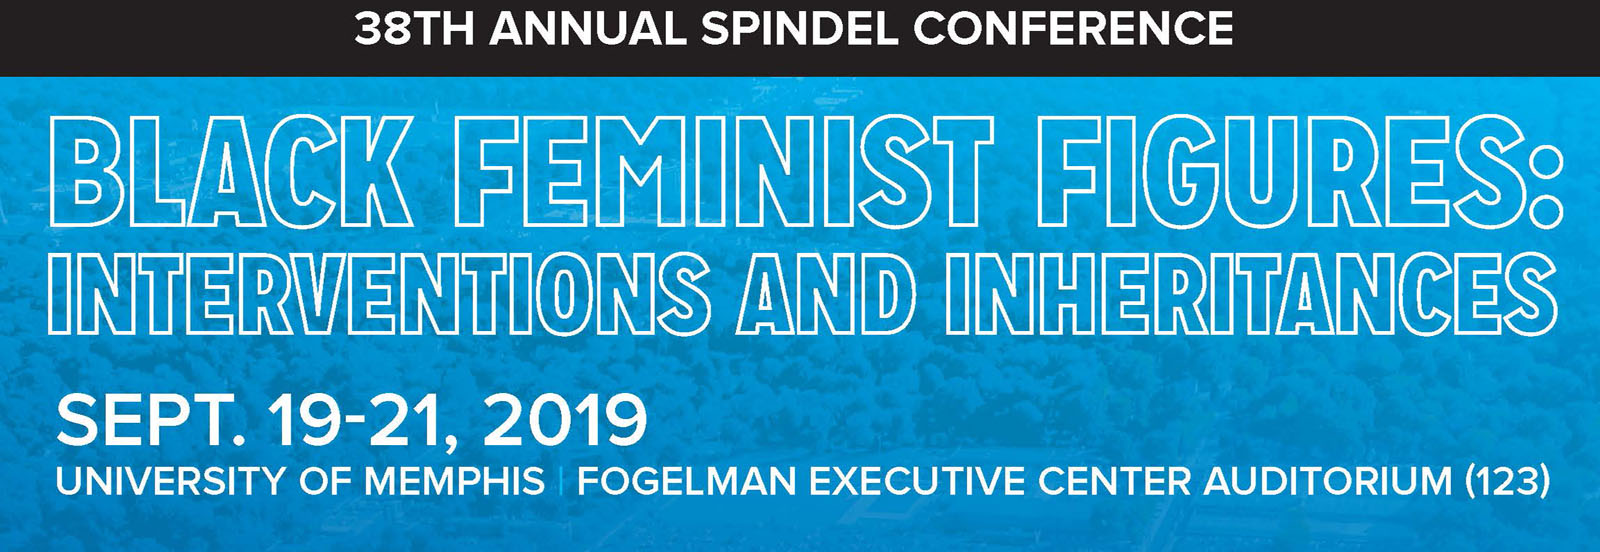 38th Annual Spindel Conference - Black Feminist Figures. The Spindel Conference is funded by an endowment from the late Murray Spindel, the annual Spindel Conference is organized around a topic of philosophical interest bringing together leading scholars working in that area.